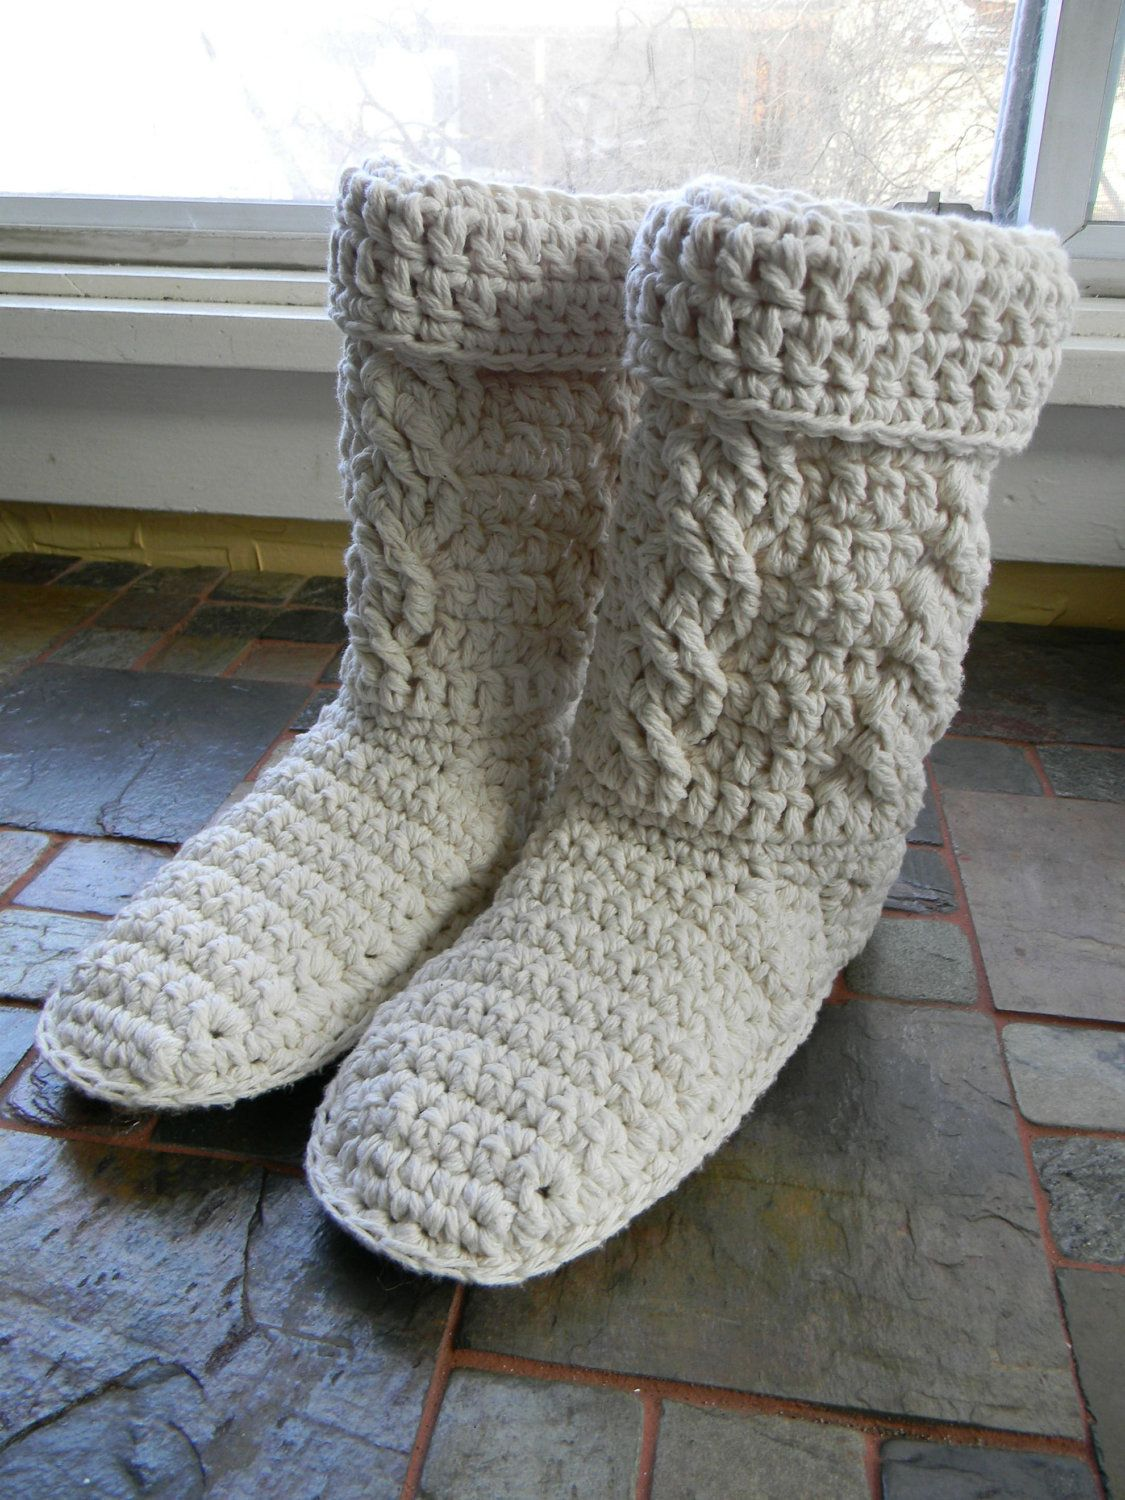 Crochet pattern mamachee boots adult women sizes cable crochet pattern mamachee boots adult women sizes cable instructions included 550 bankloansurffo Choice Image